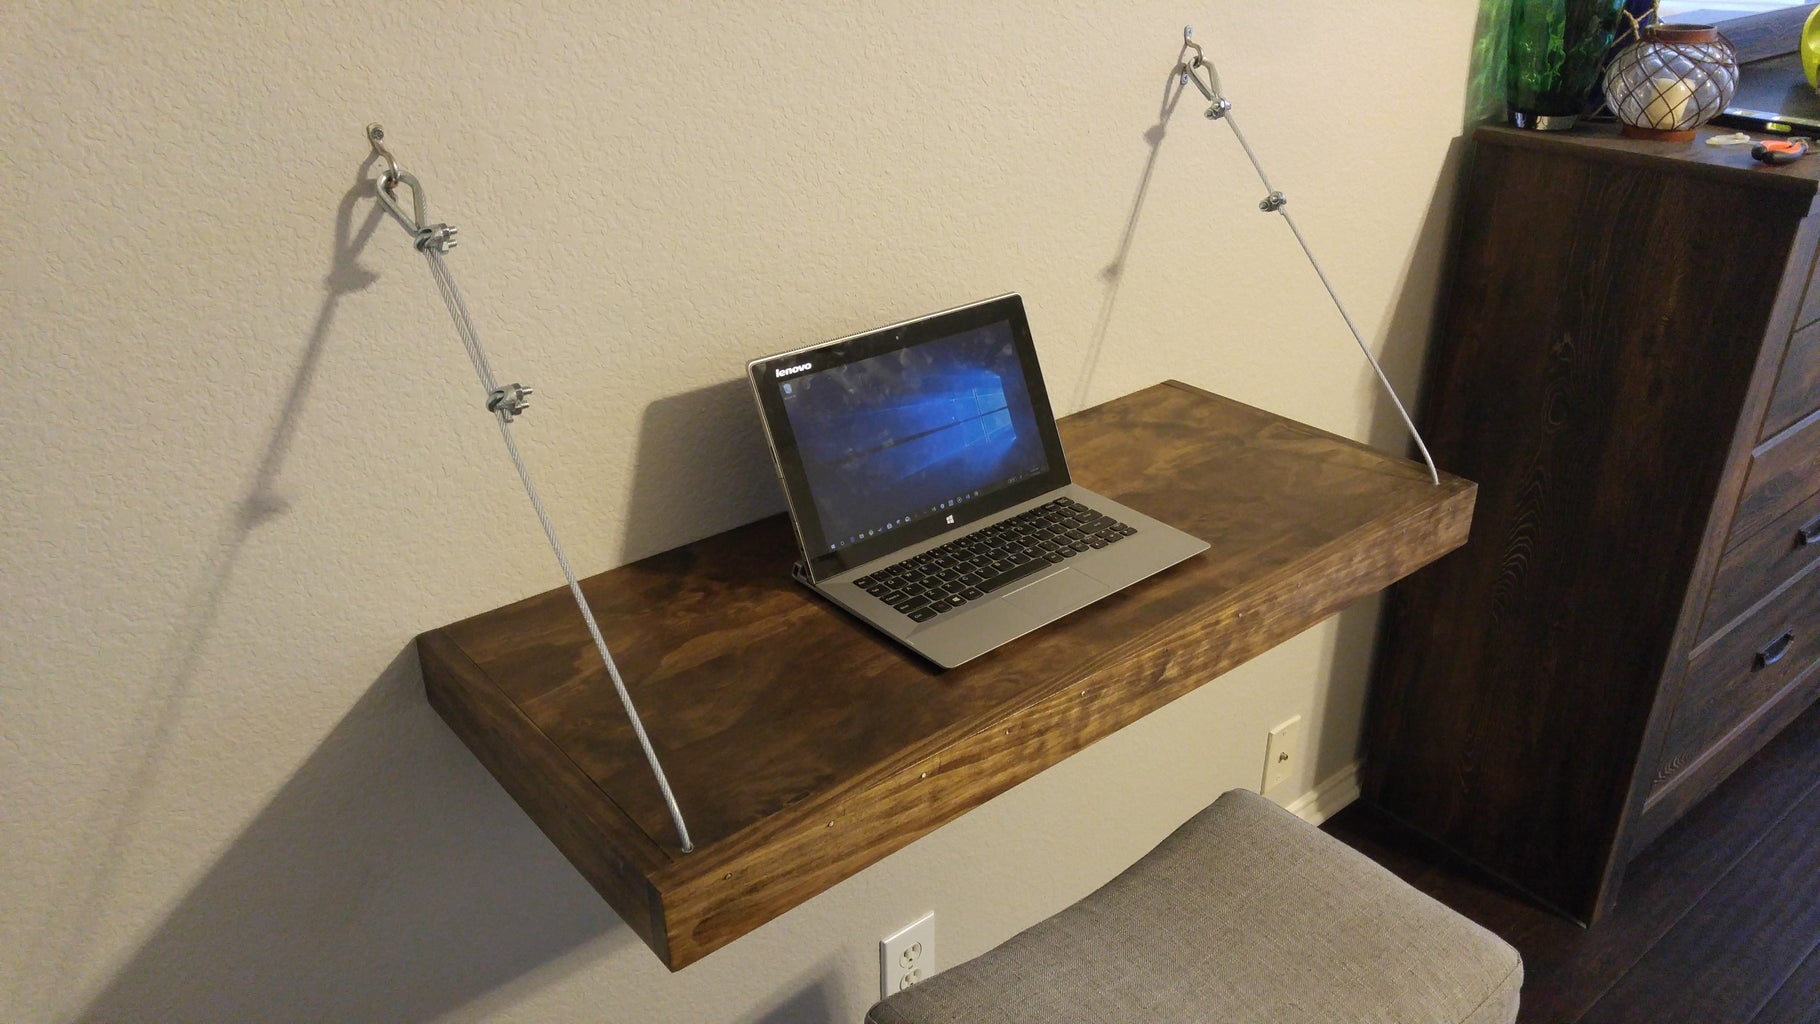 Mount Desk and Add Steel Wire